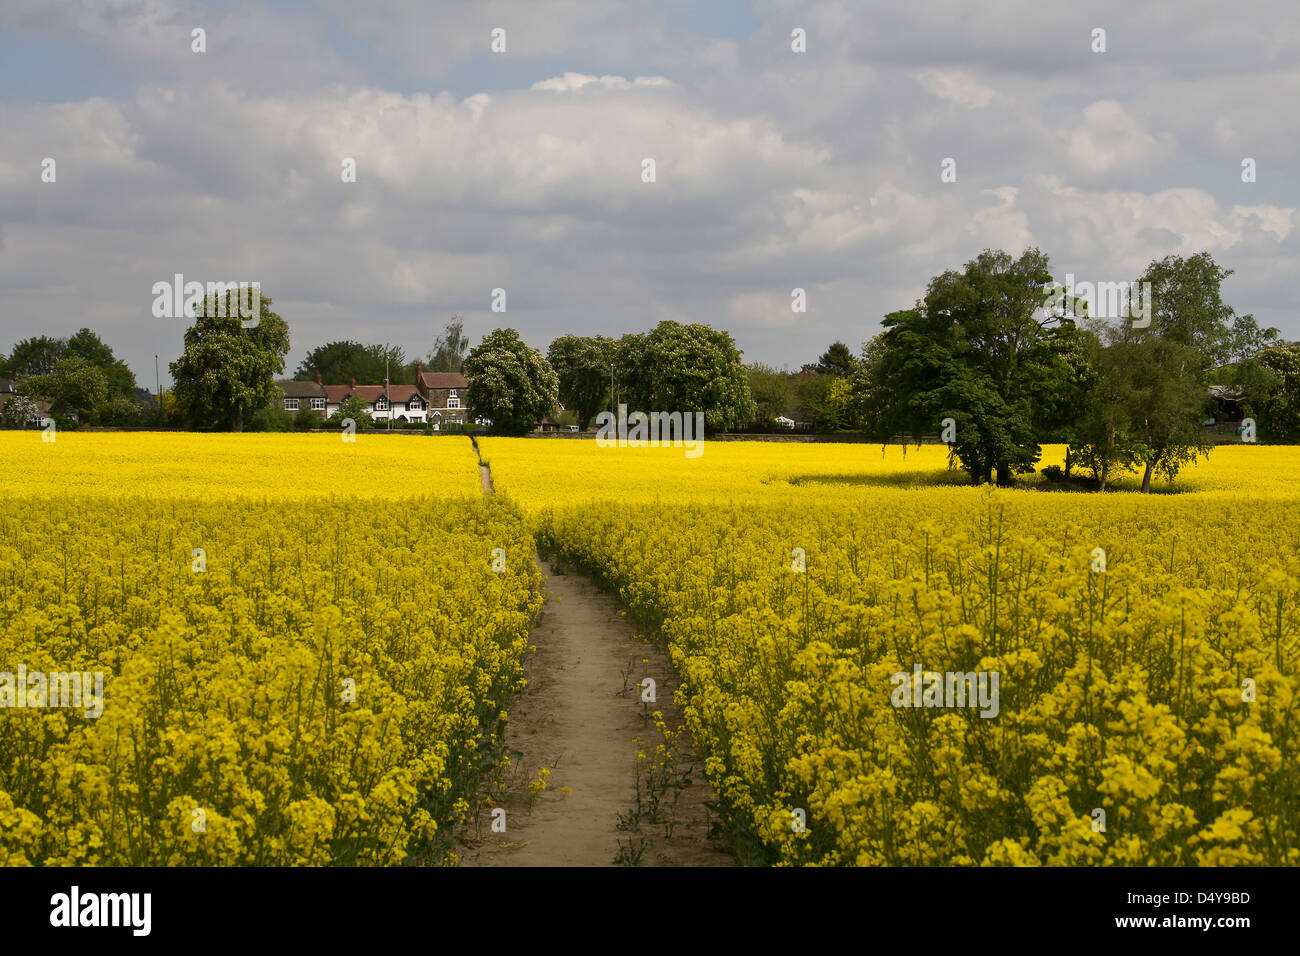 A lovely path through a vibrant field of Rapeseed - Stock Image